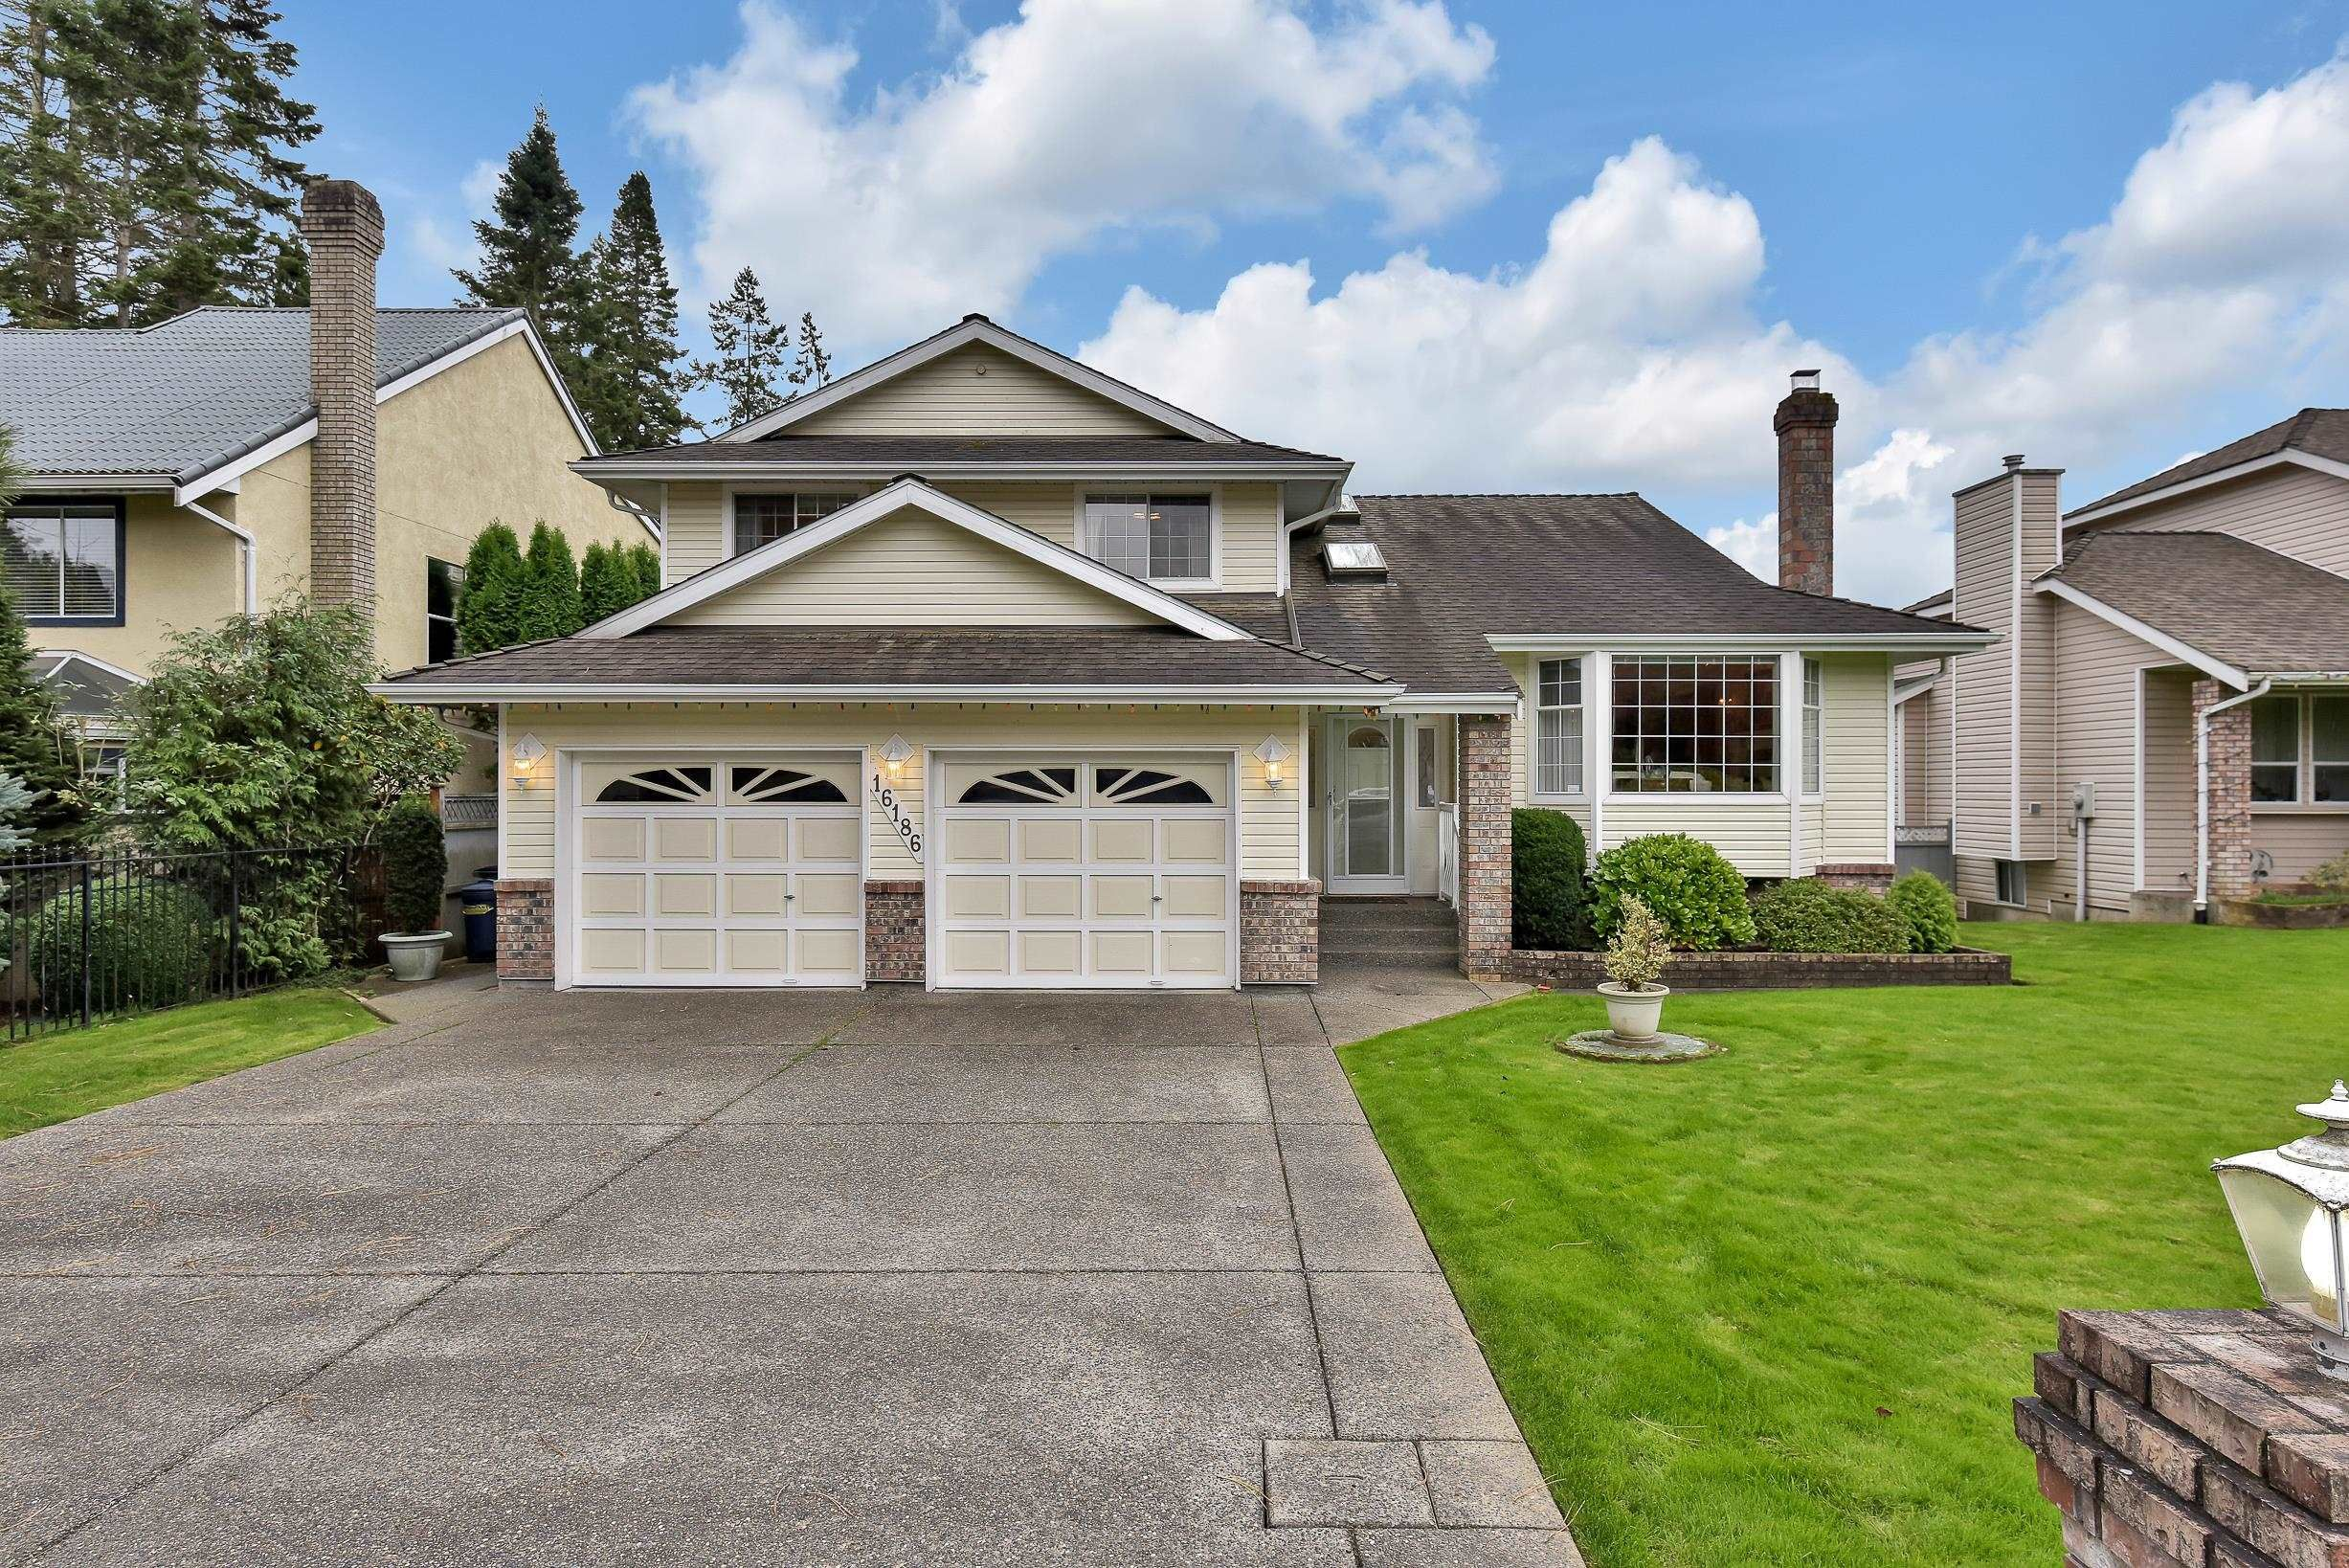 """Main Photo: 16186 9 Avenue in Surrey: King George Corridor House for sale in """"McNally reek"""" (South Surrey White Rock)  : MLS®# R2624752"""